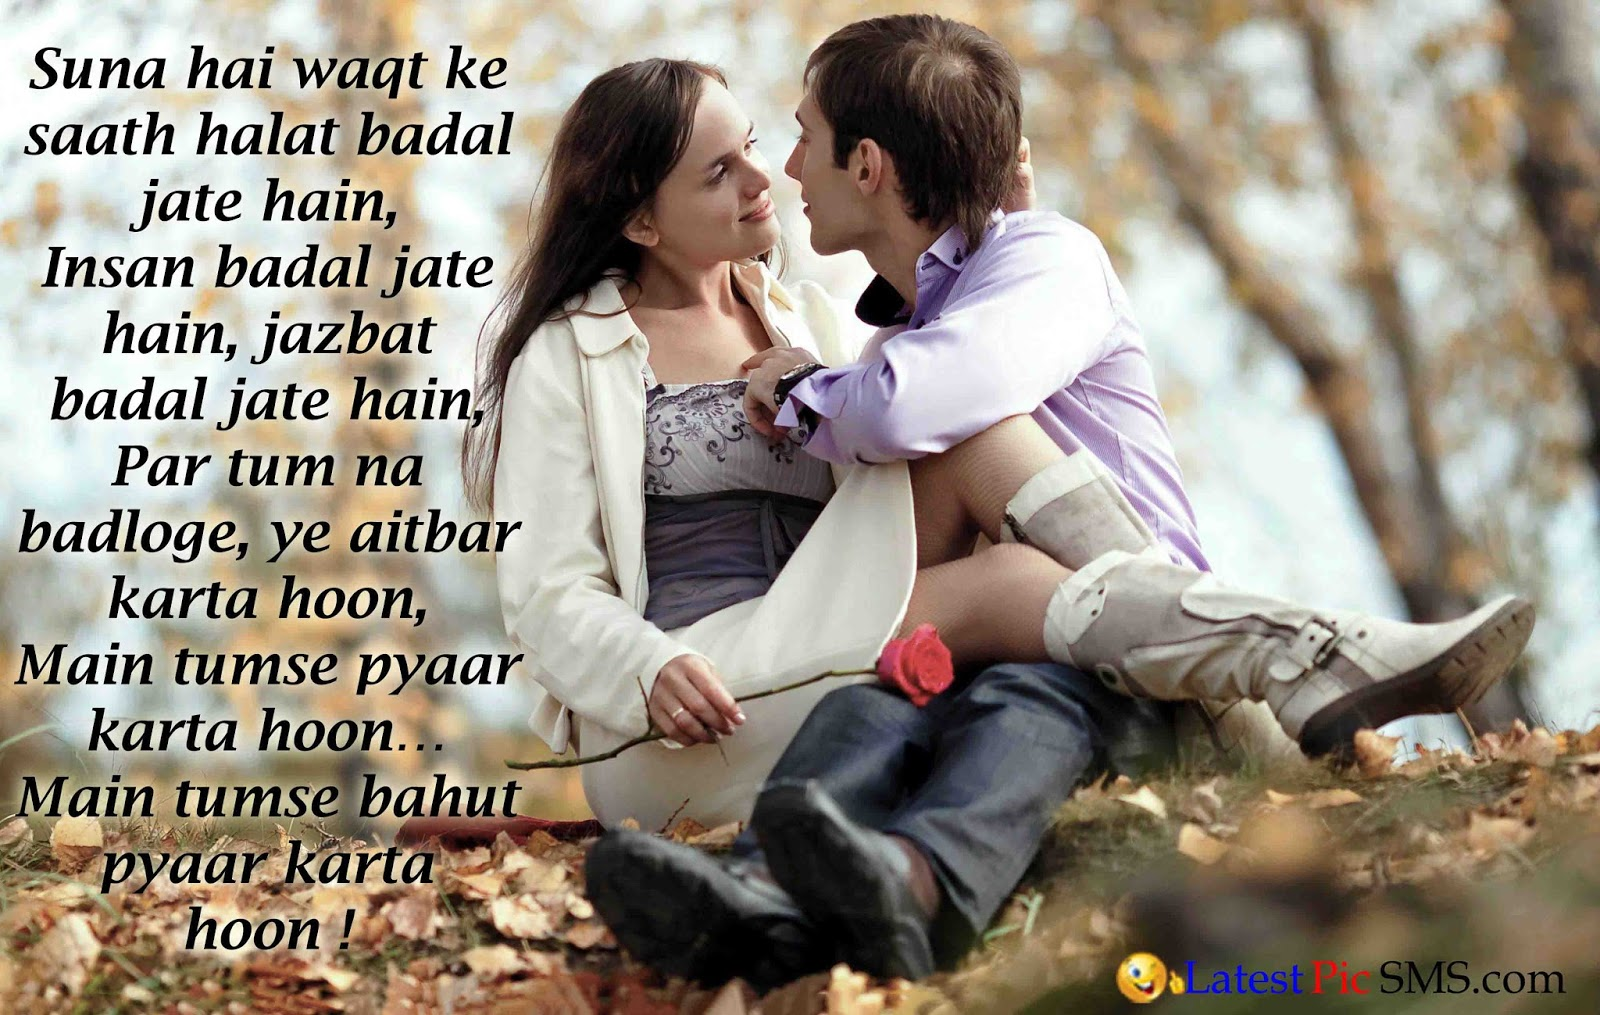 famous love shayari for true lovers | latest picture sms